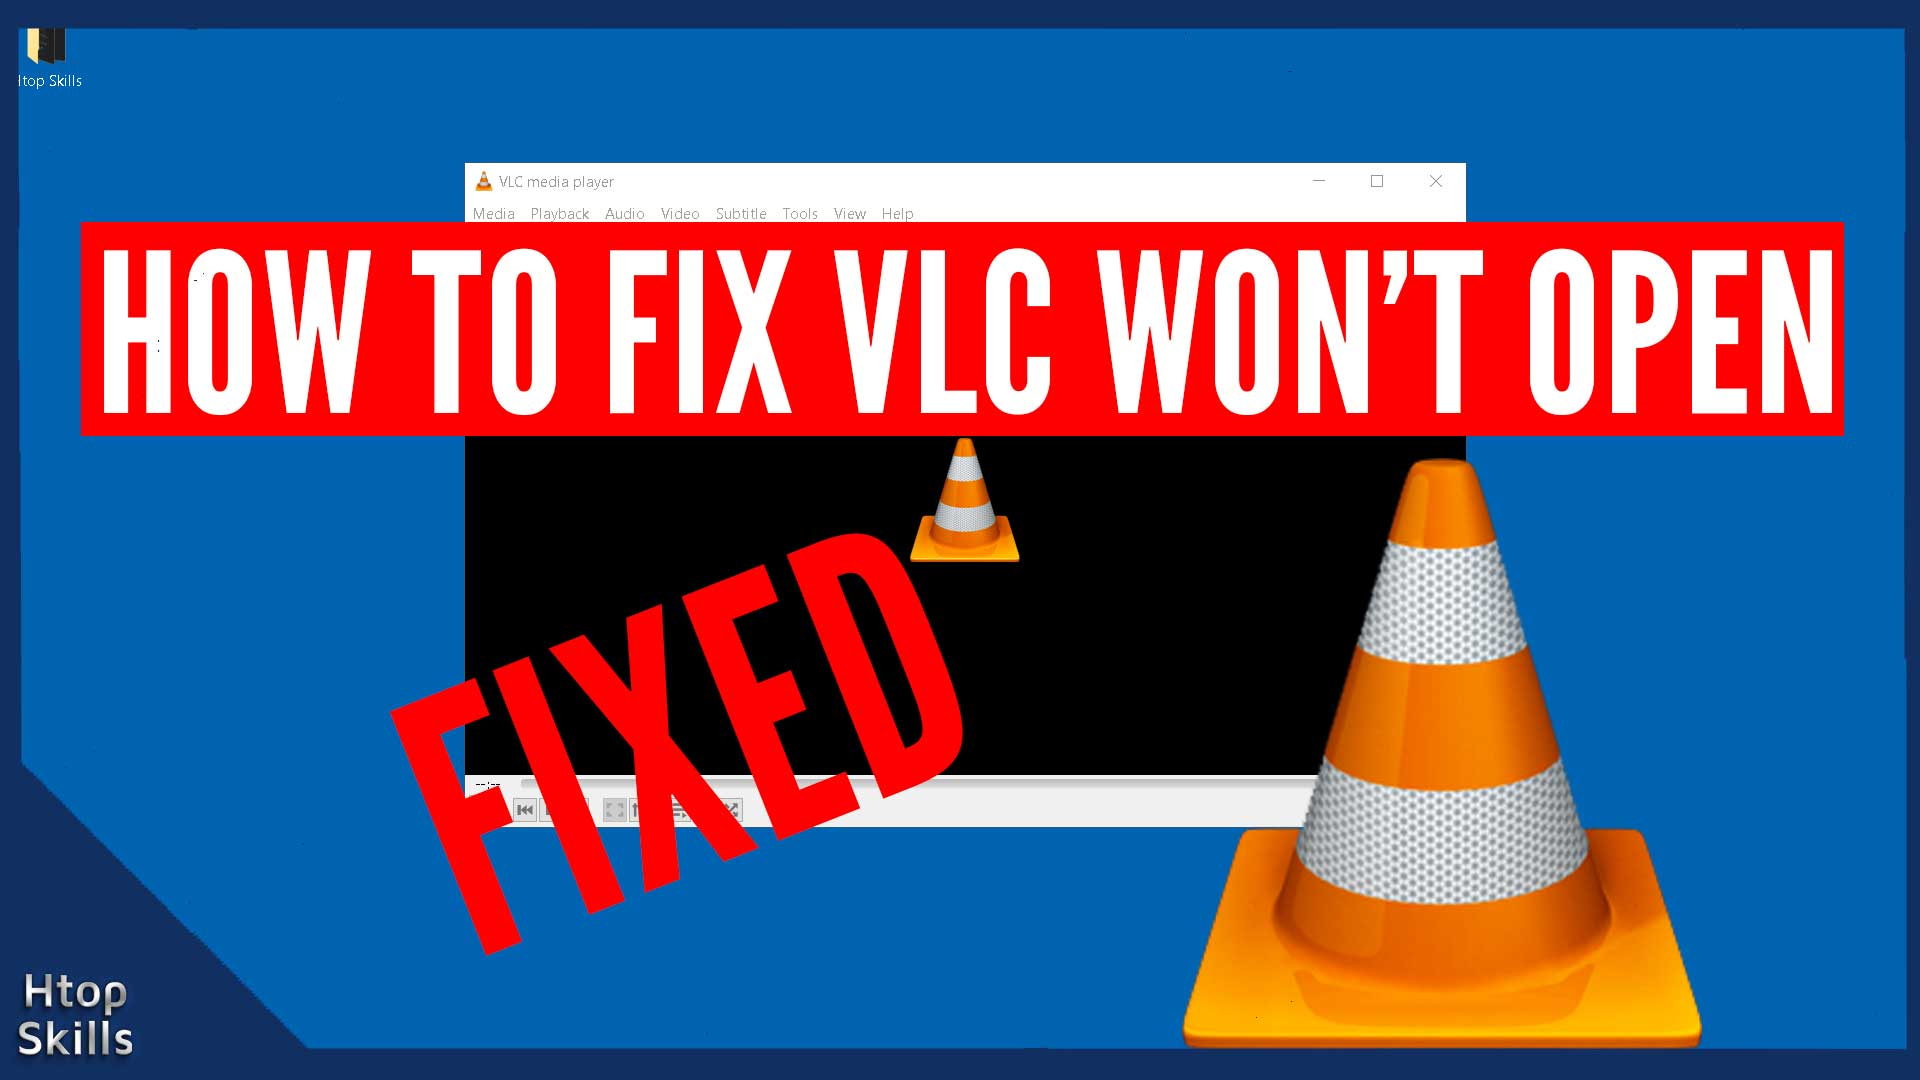 How to fix VLC won't open